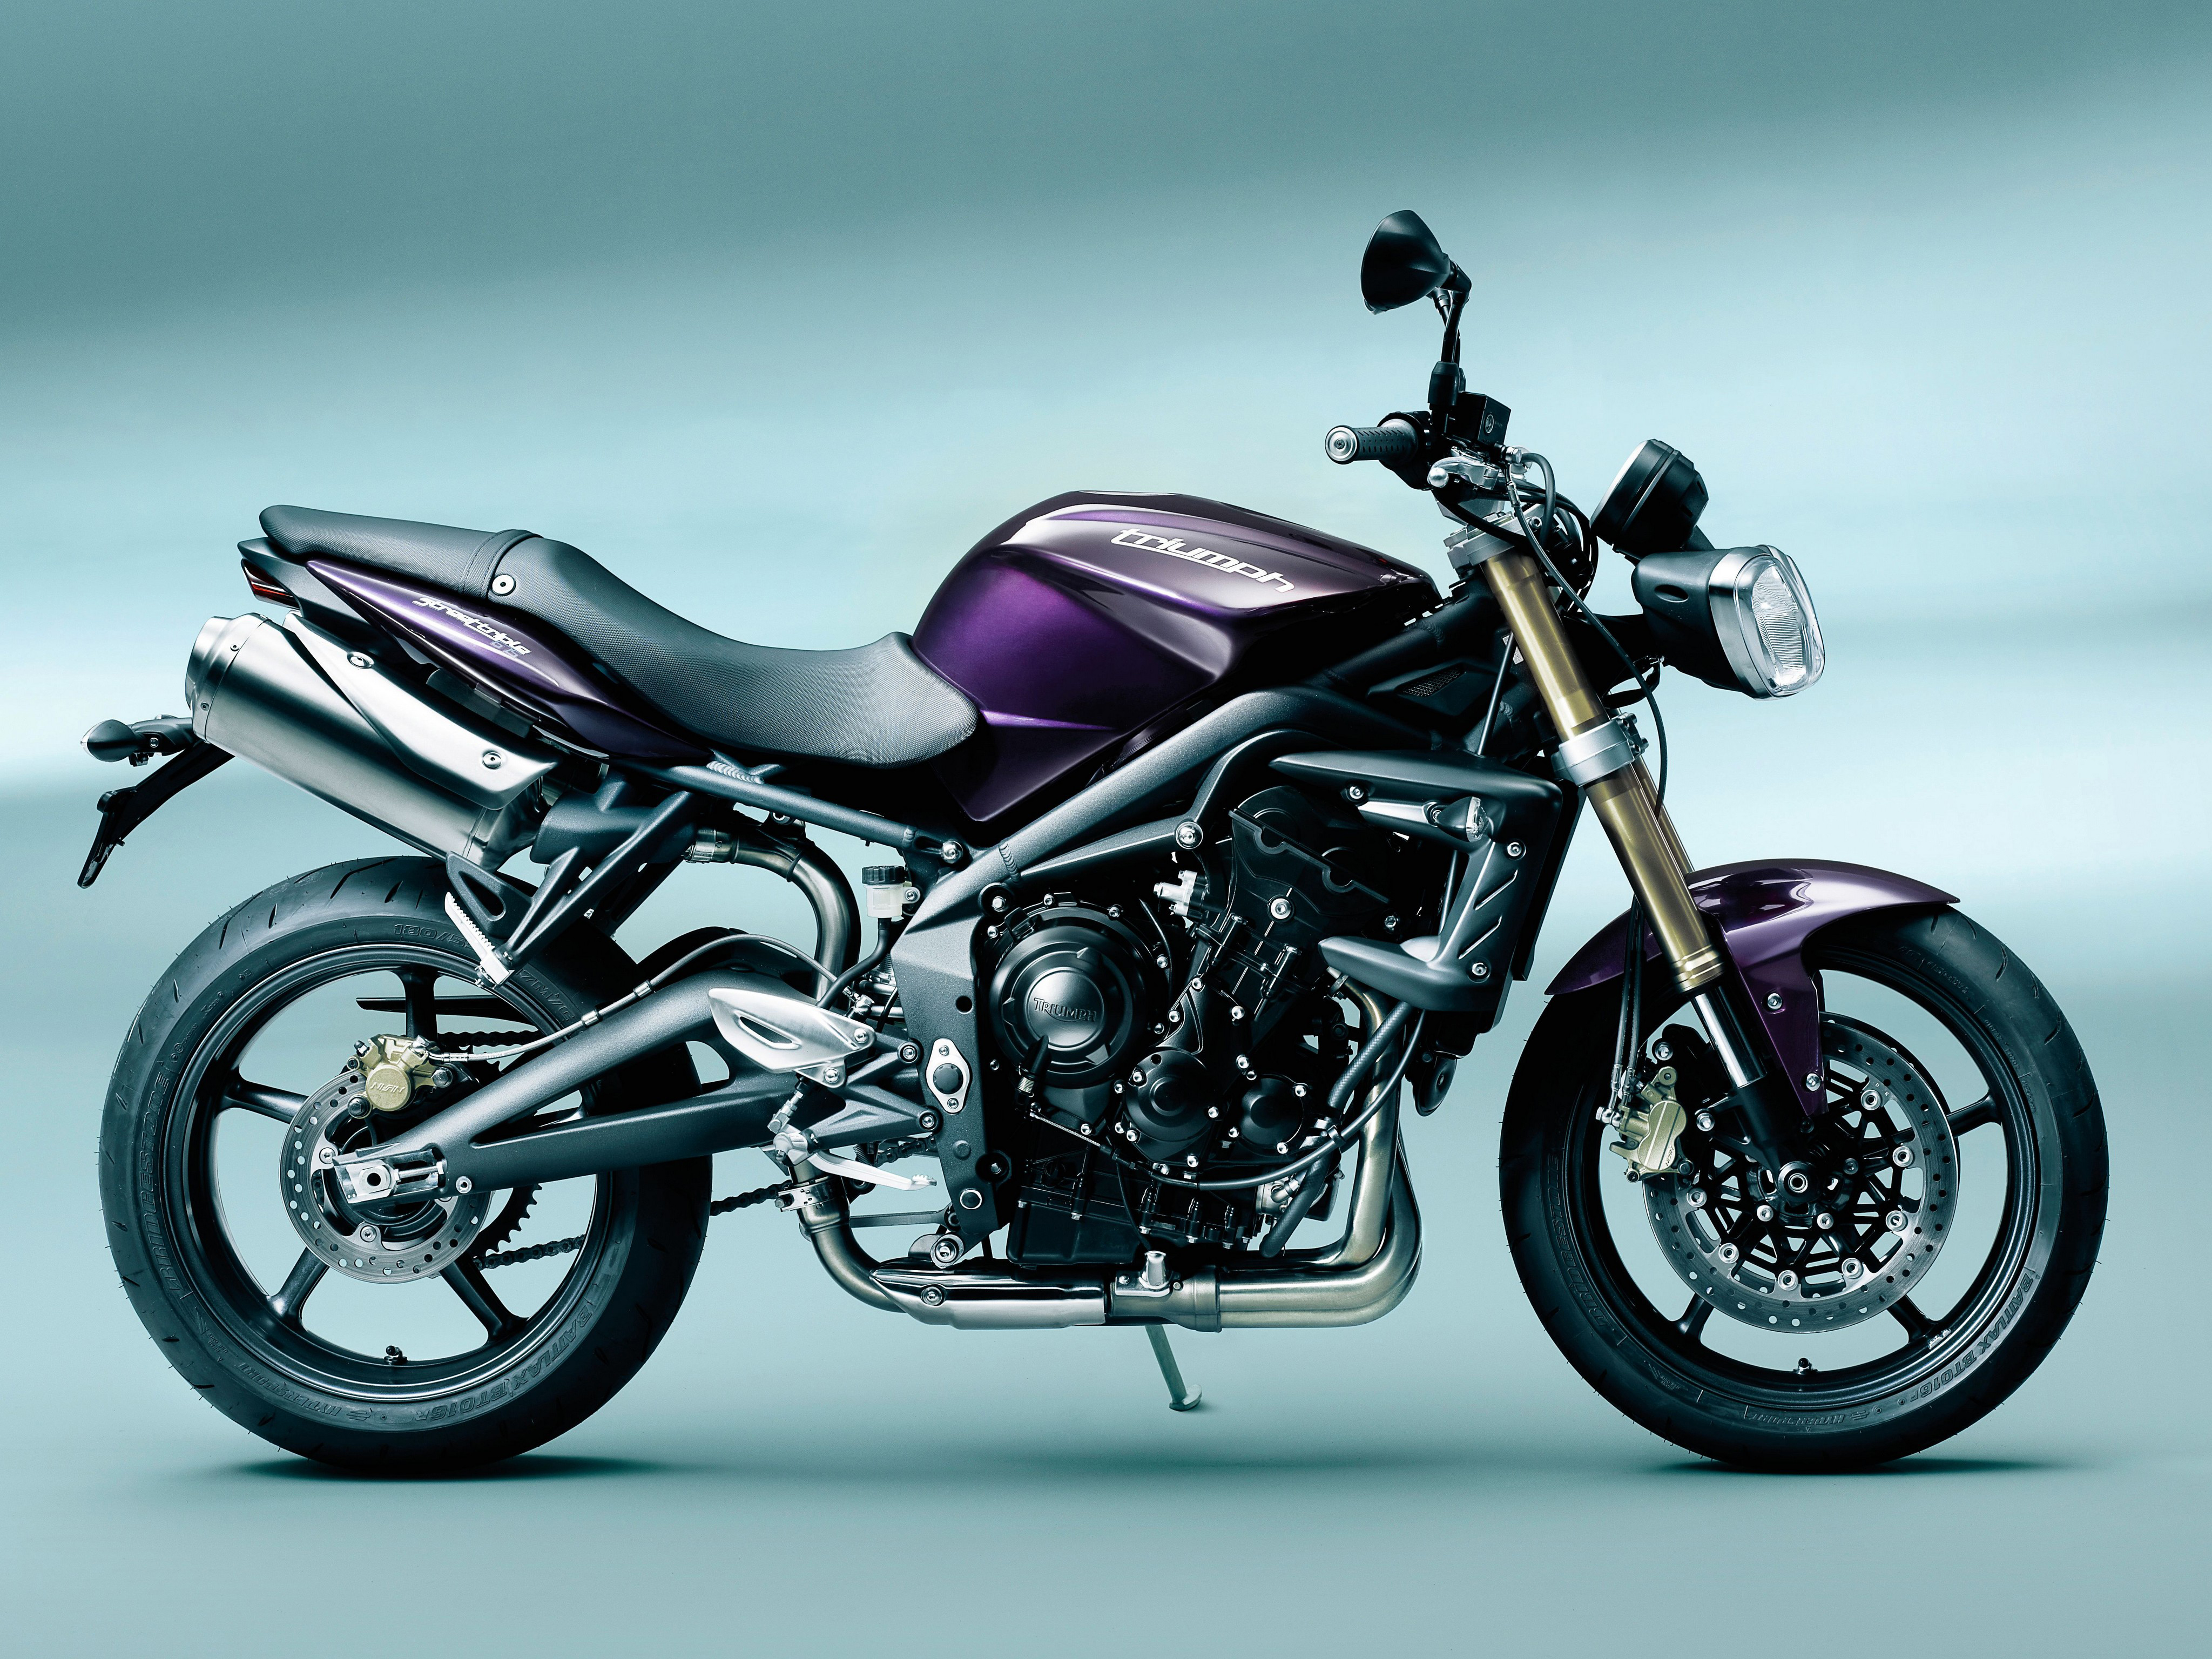 Triumph Street Triple 675 4k Ultra Hd Wallpaper Background Image